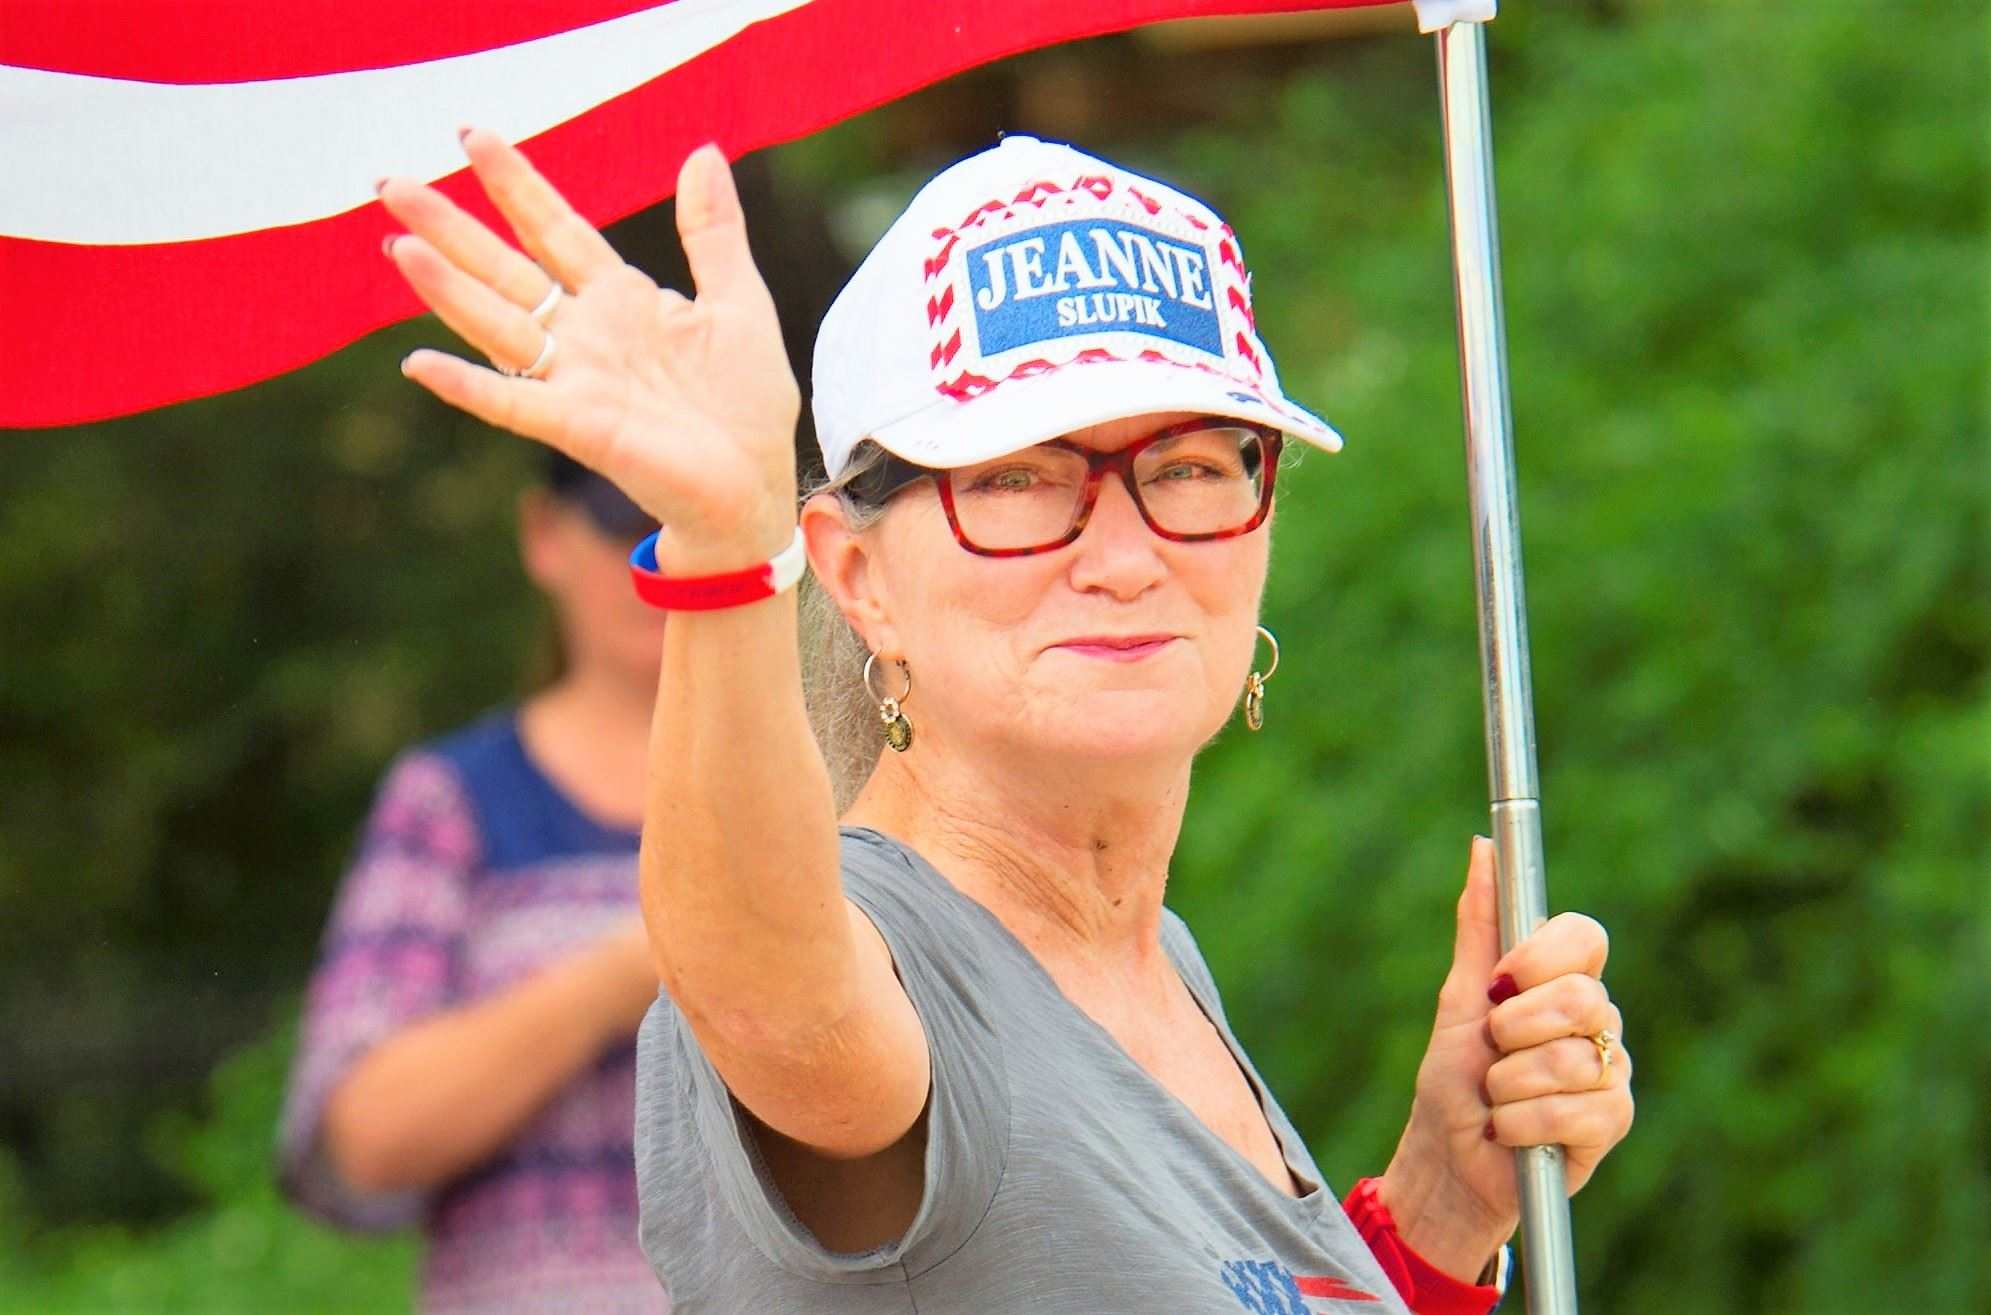 Jeanne Slupik to Work on Growth and Public Safety if Elected County Commissioner Pct. 4 for Comal County